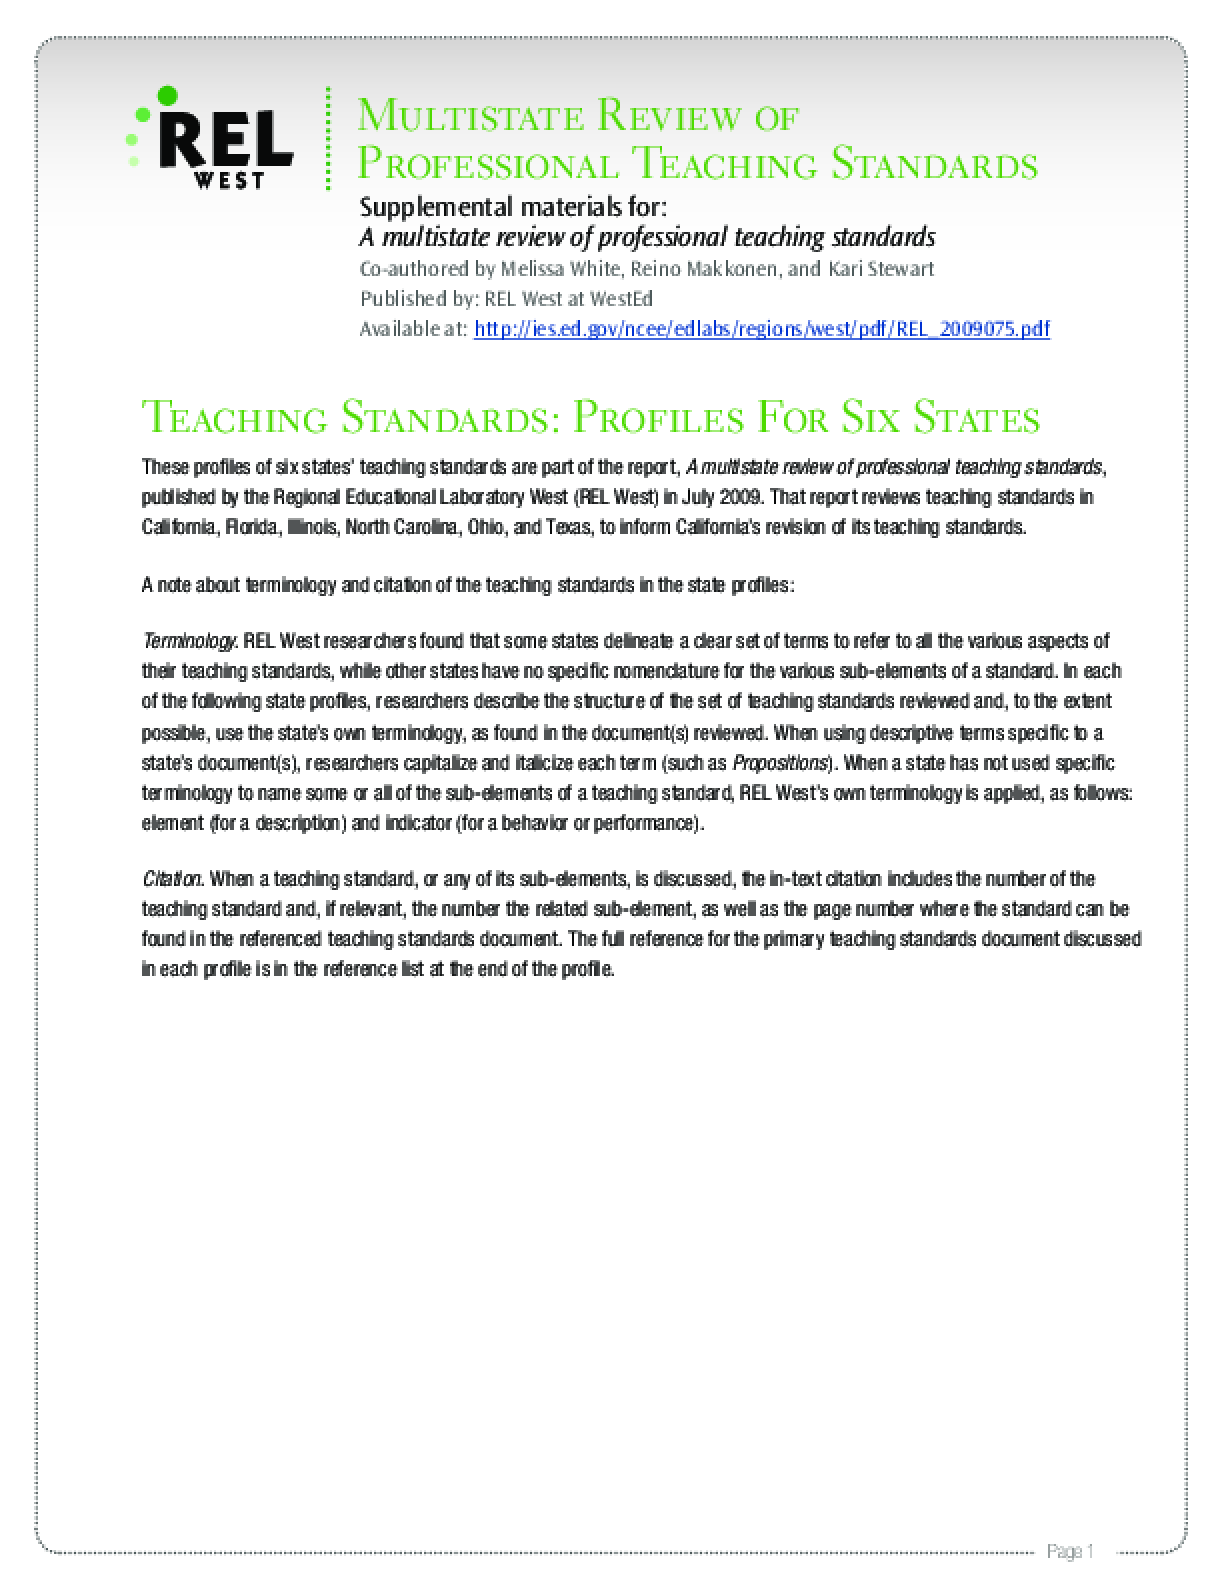 Teaching Standards: Profiles For Six States